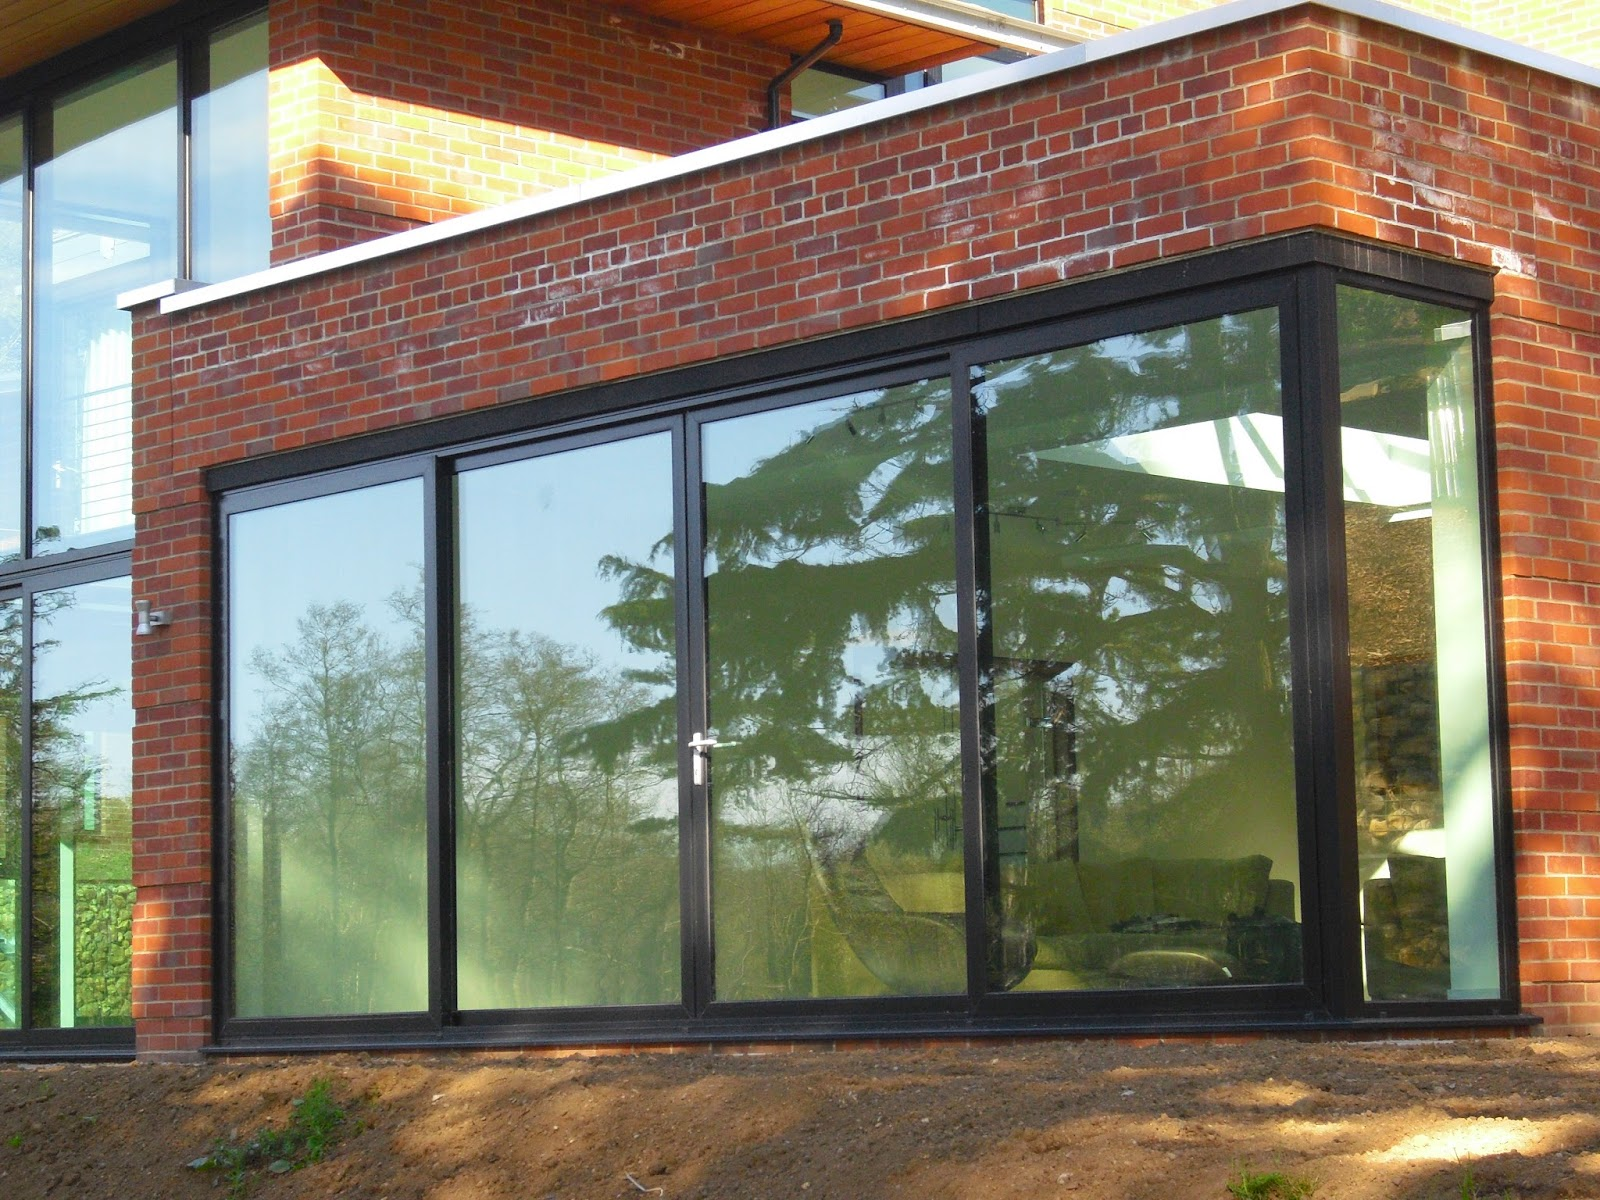 Recent contracts which we have been proud to be part of are the refurbsihment of Norwich City College main building and the provision of the new University ... & News from Broadland Windows